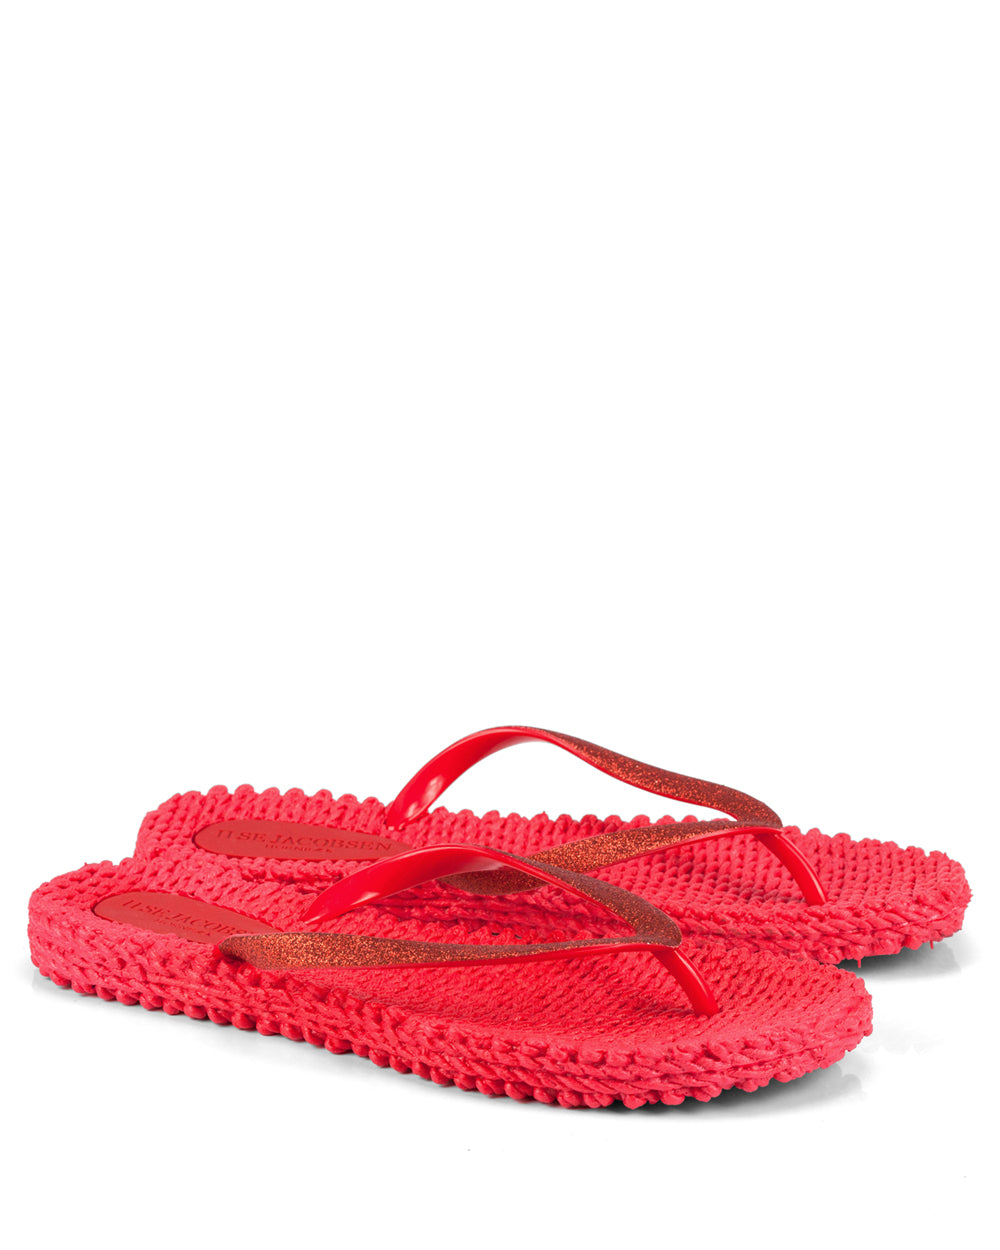 Cheerful Deep Red Flipflops - The Espadrille Hut